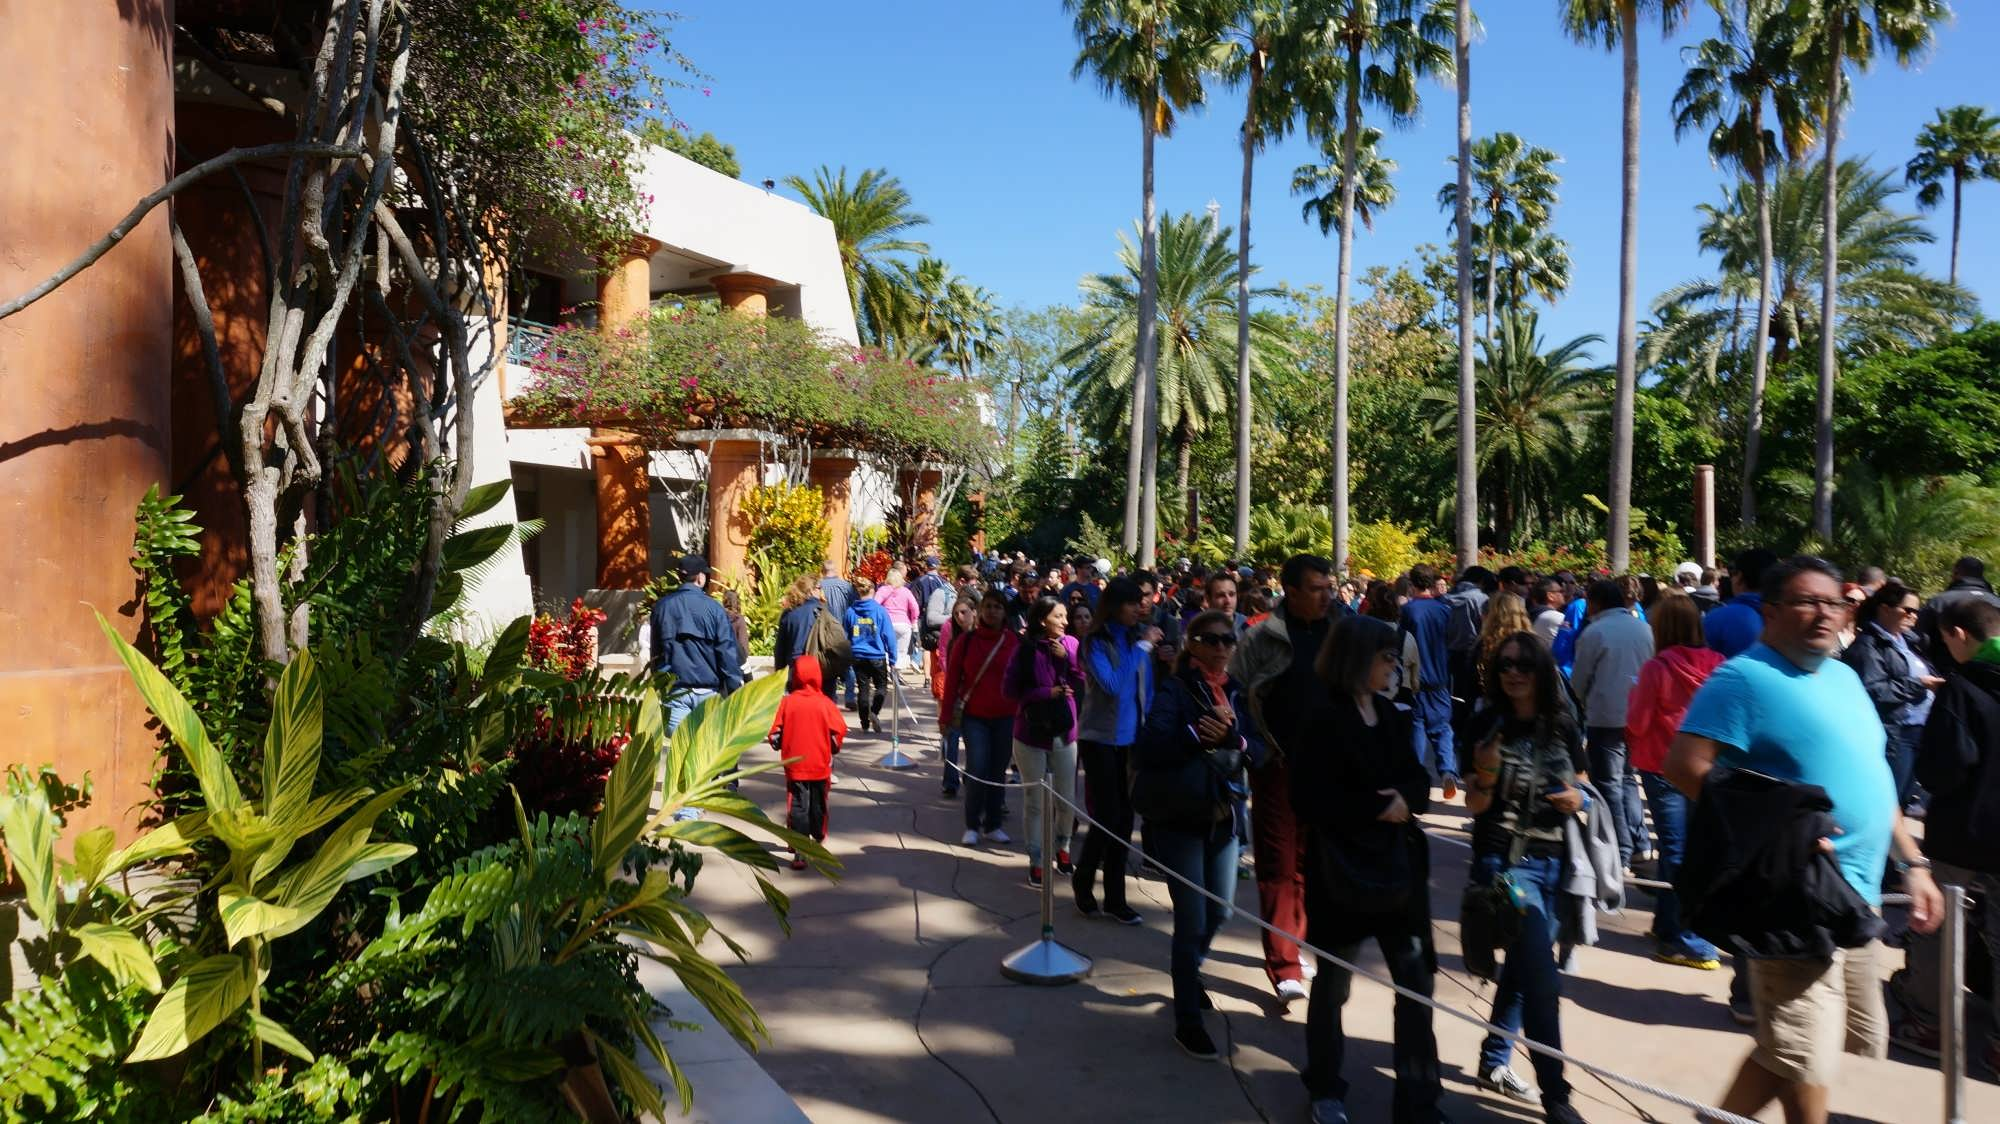 Hogsmeade standby line by the Jurassic Park Discovery Center